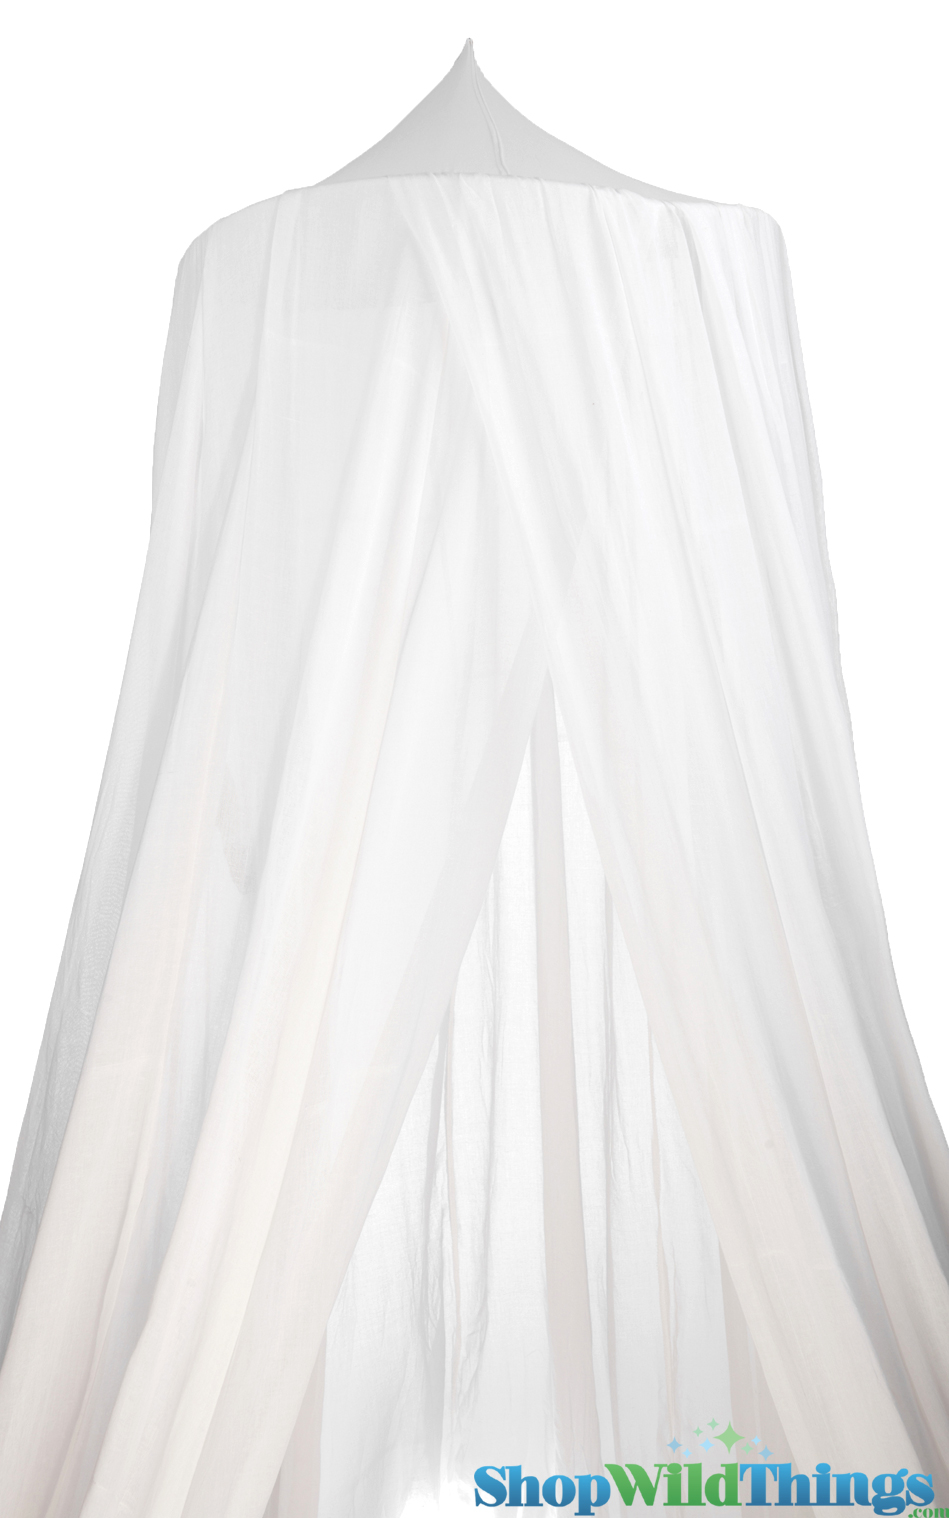 White cotton bed canopy romatic bed canopy for adults for White canopy curtains